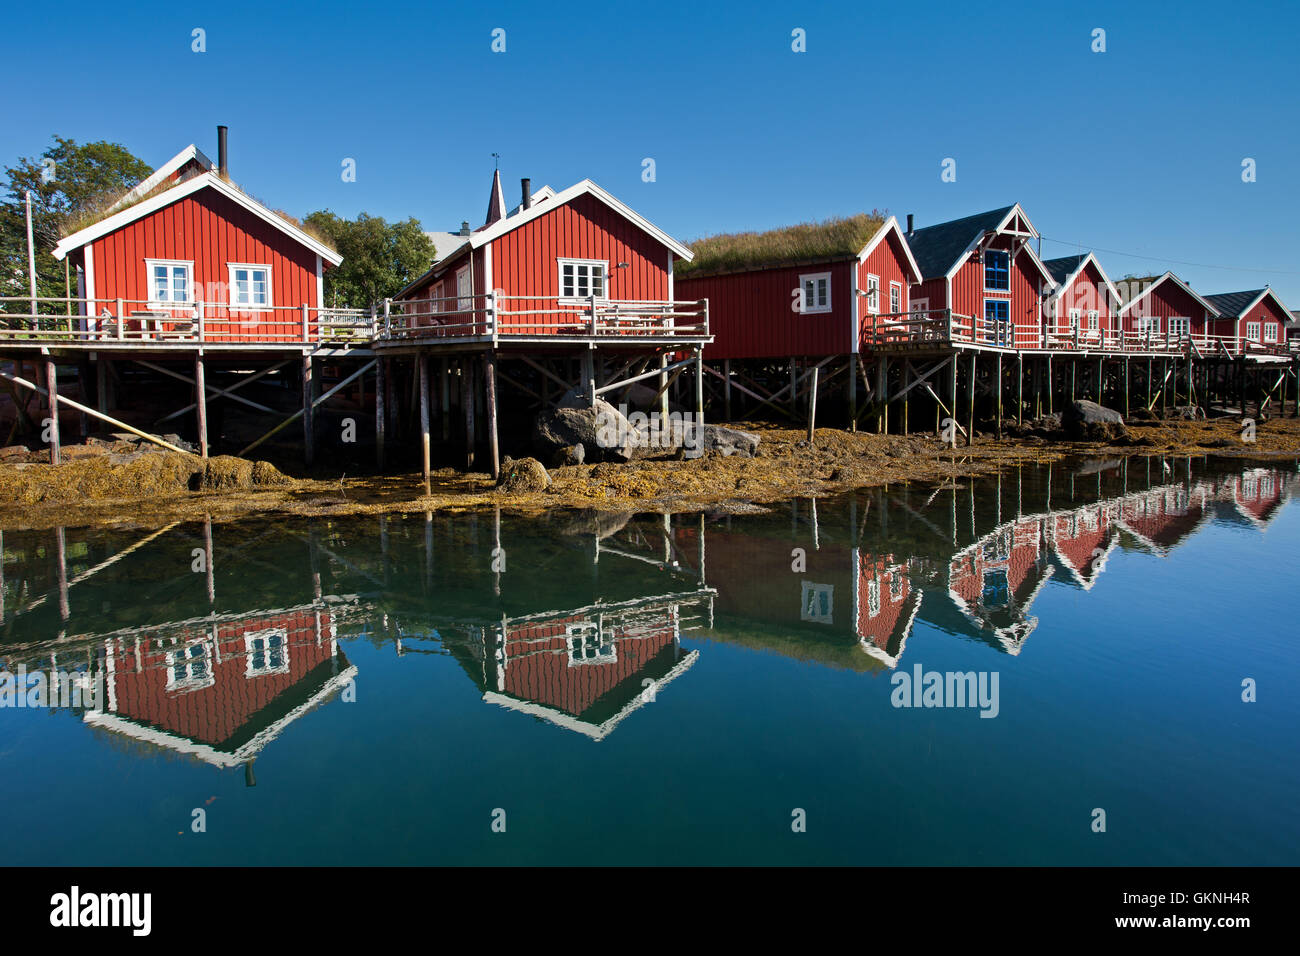 Reine: Rorbus and Reflections Stock Photo